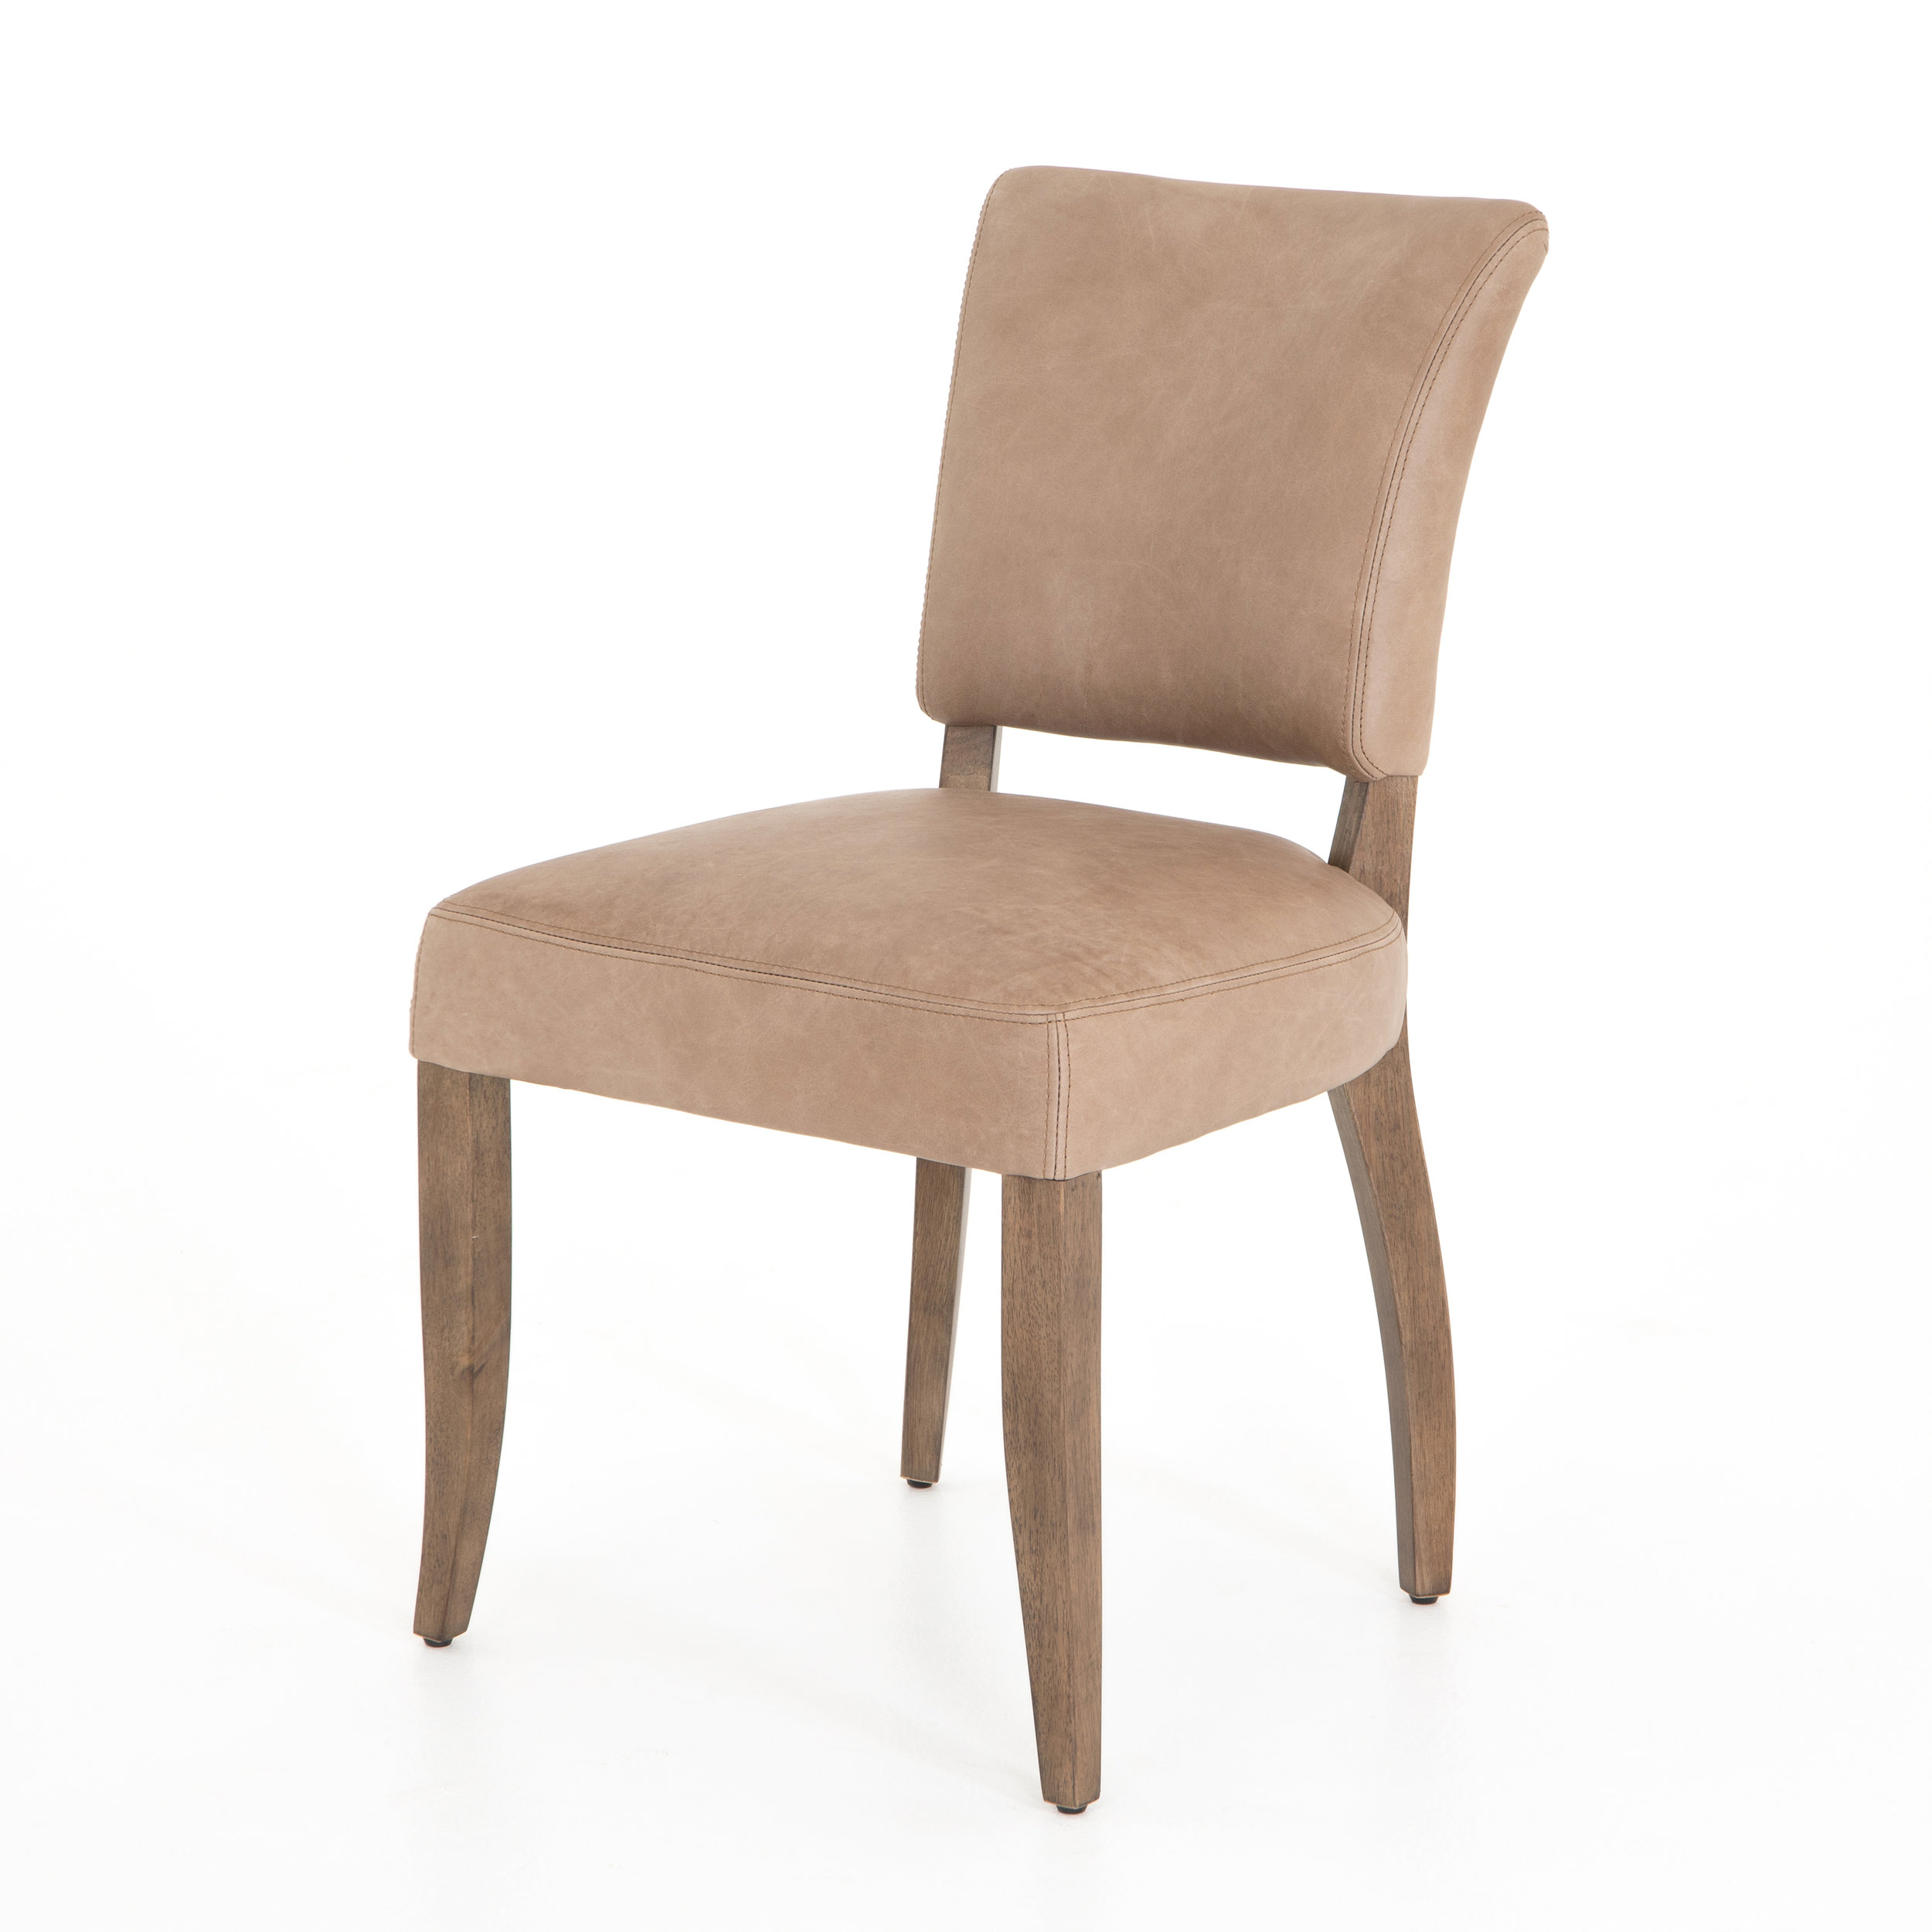 Mimi Dining Chair    |  Seductively simple. Framed by weathered oak, light tan top-grain leather features the glint of gold nail heads squaring out its back.